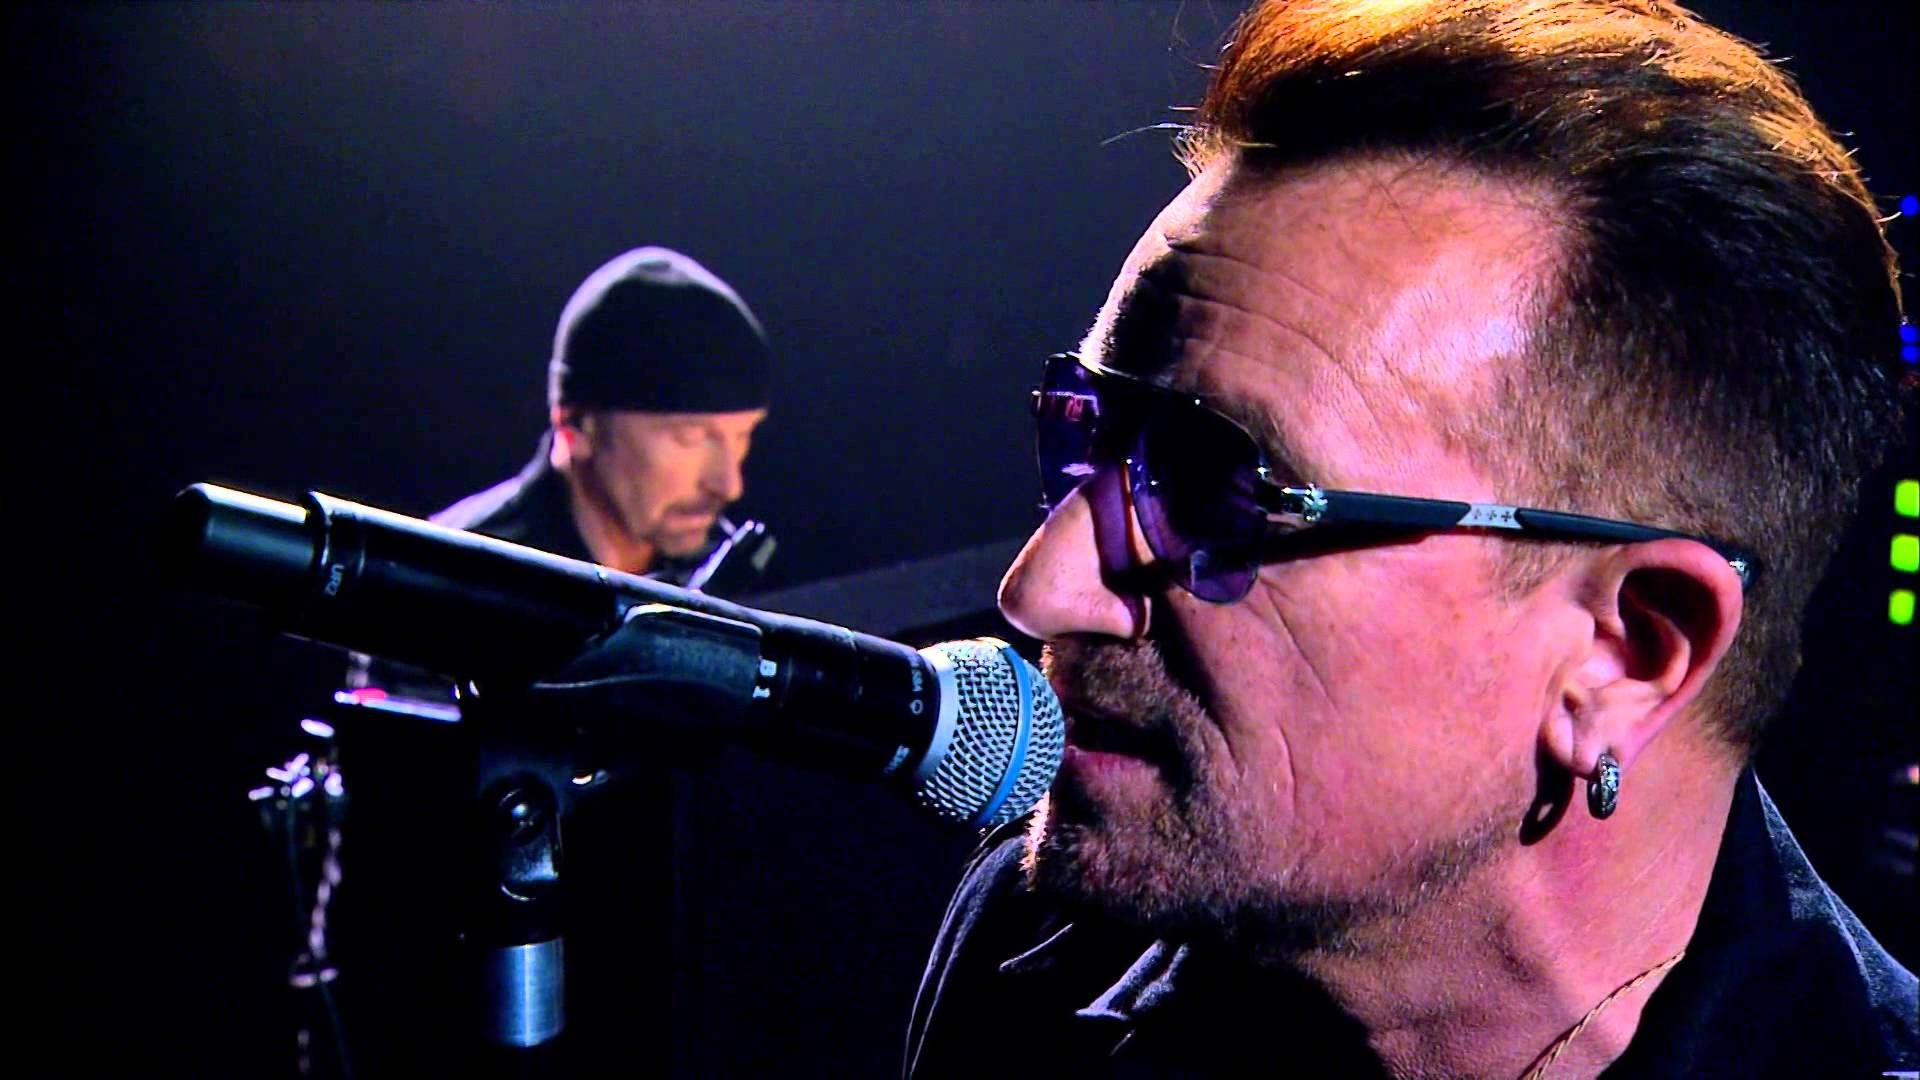 U2 Live - Every Breaking Wave (acoustic) This song has